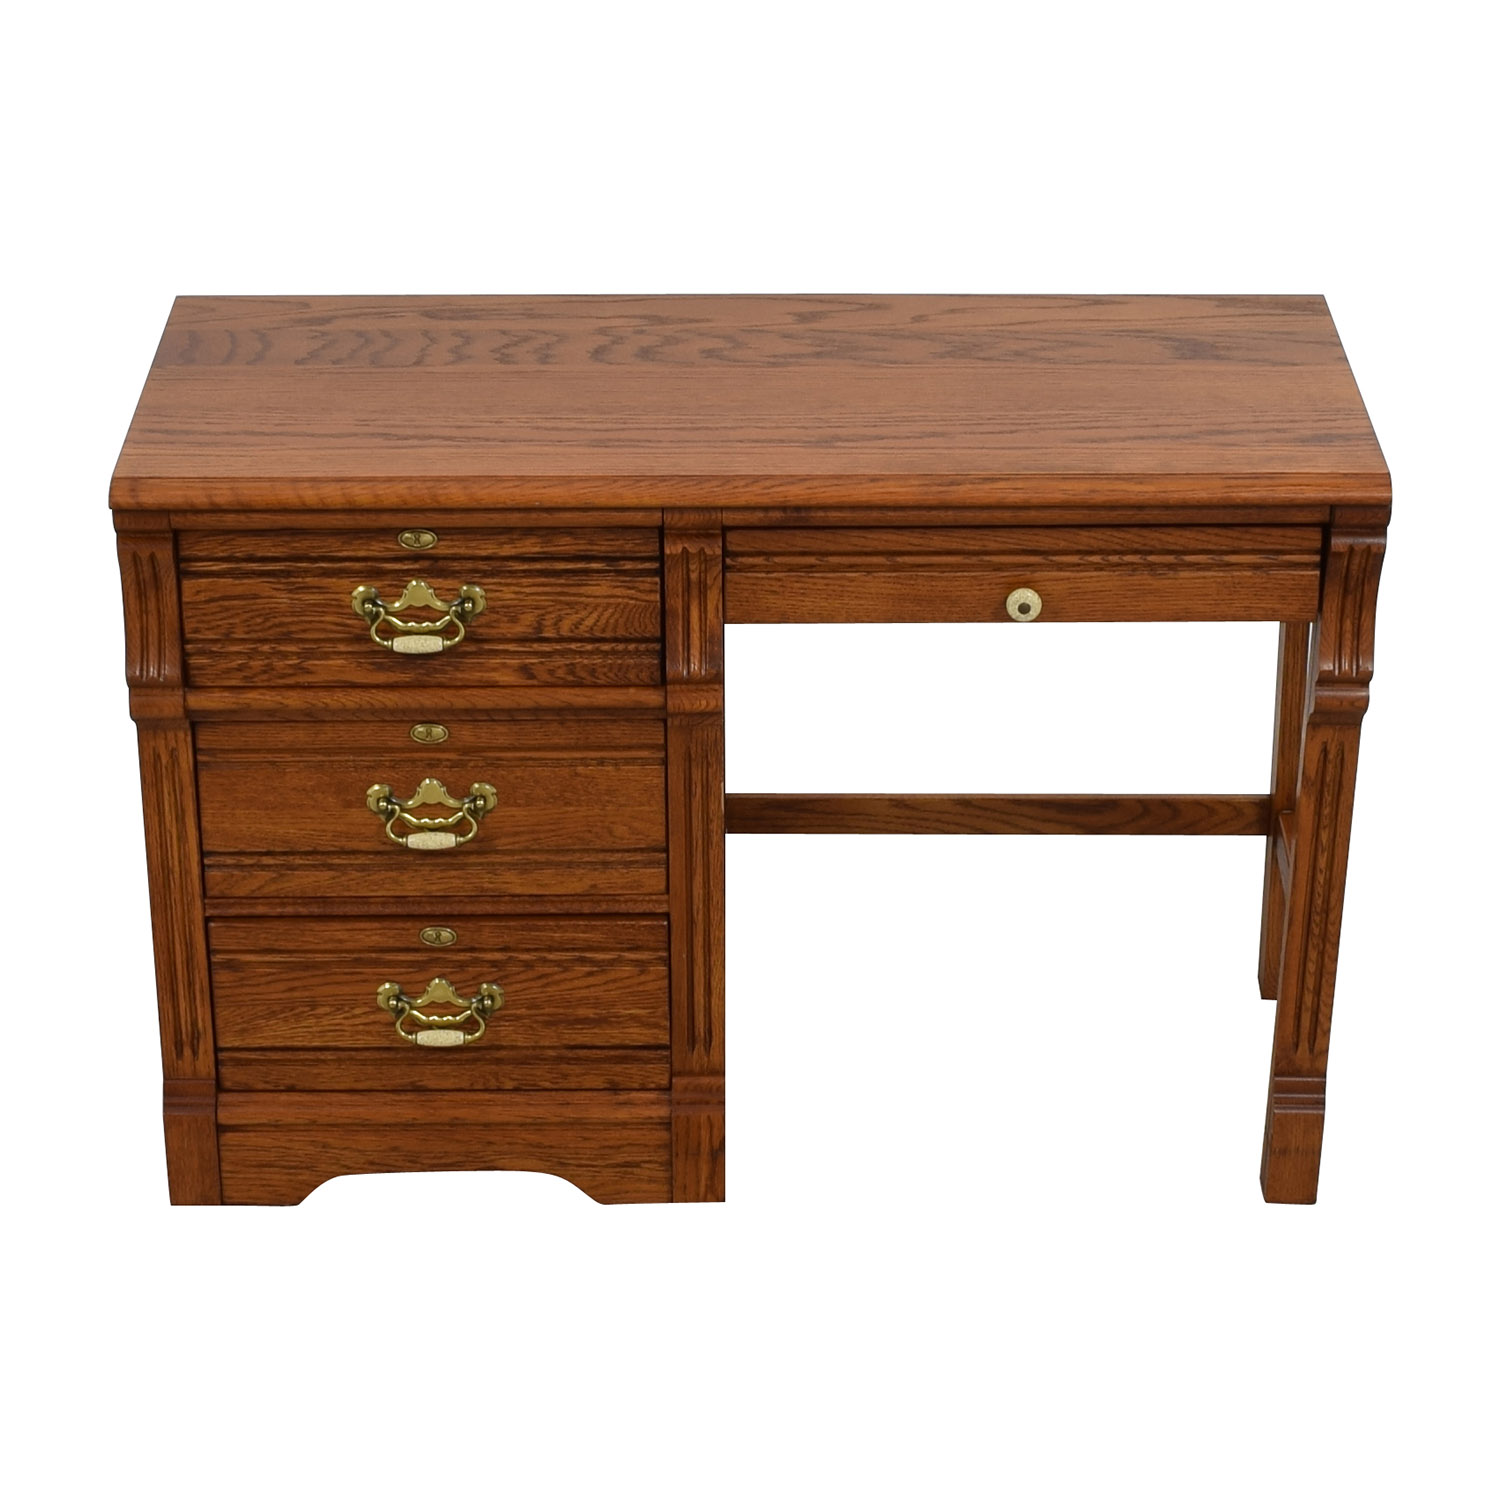 Lexington Recollections Lexington Recollections Oak Desk dimensions